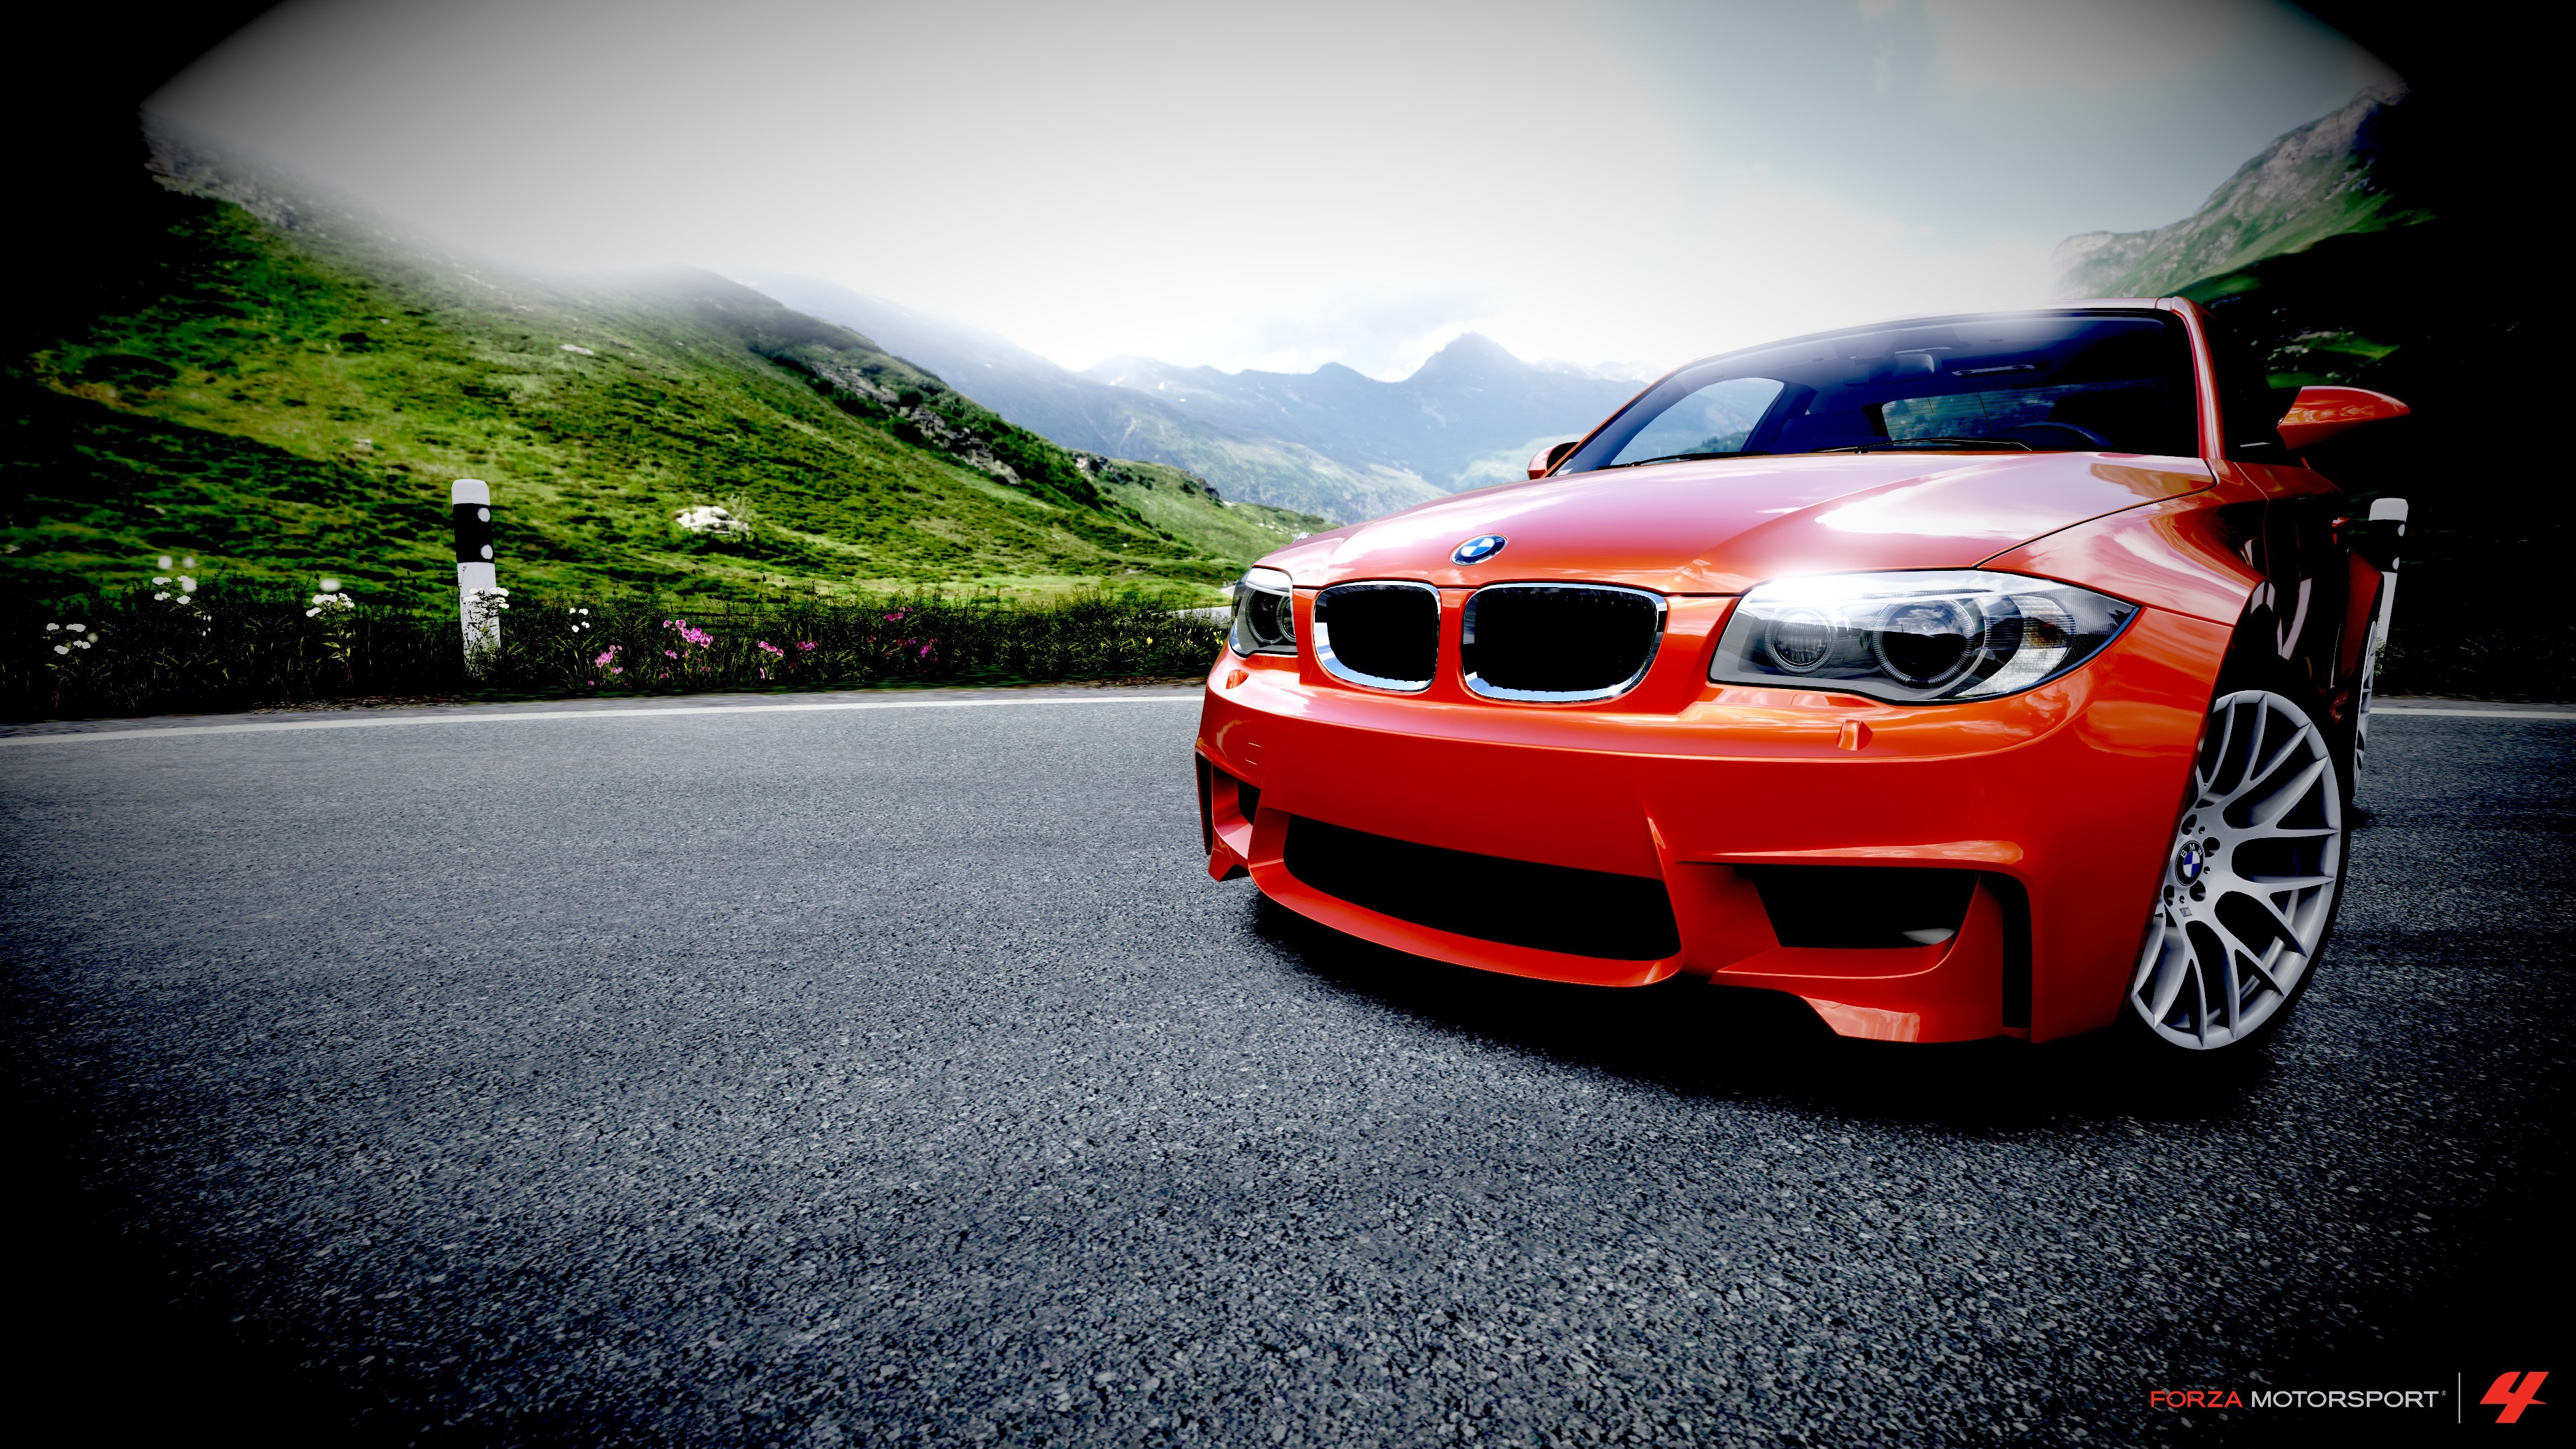 Car Muscle Cars Rally Cars BMW Wallpapers HD Desktop